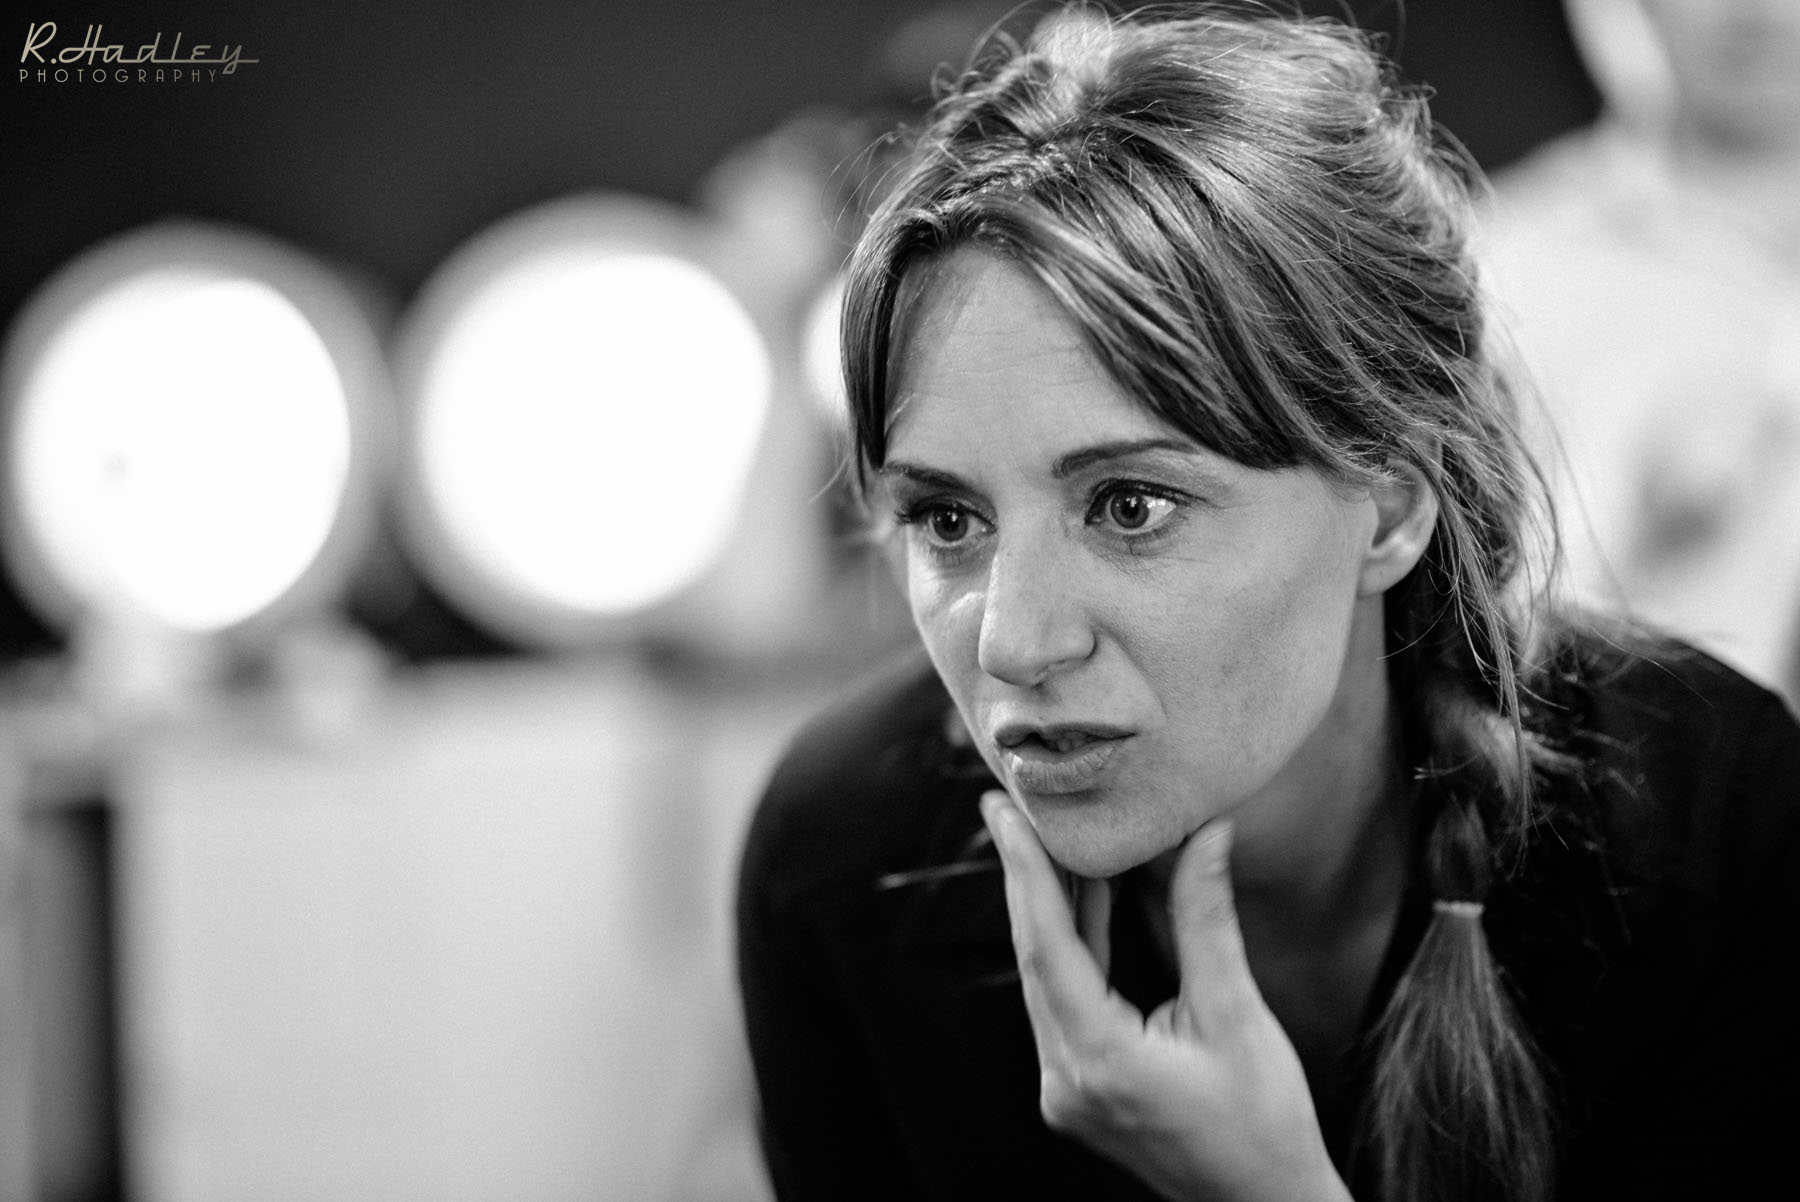 Carolina de Santis directing one of her productions in Barcelona